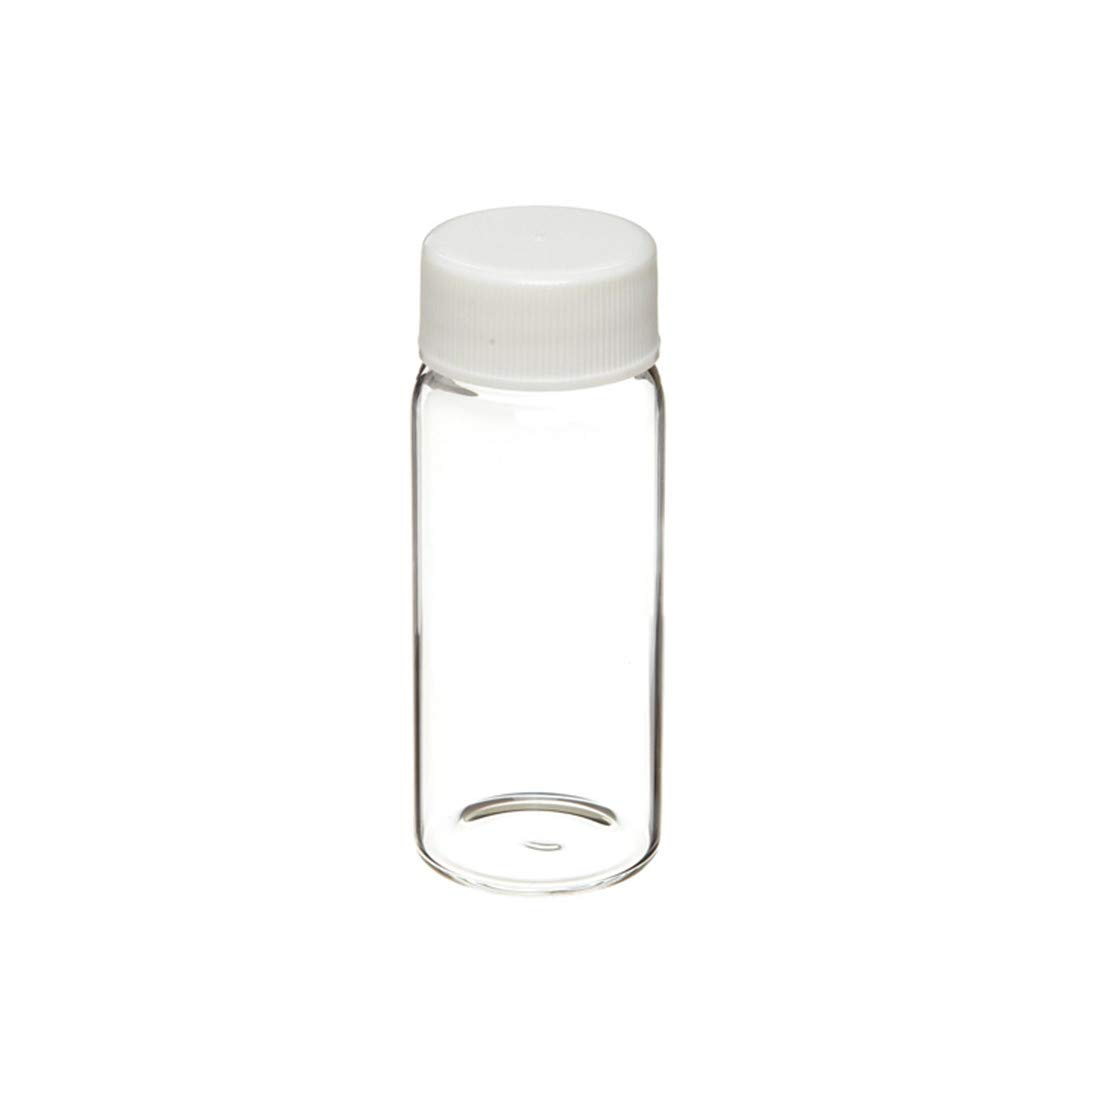 366228204 Borosilicate Glass 7mL Liquid Scintillation Vial with 22-400 White Polypropylene Pulp-Backed Foil Lined Screw Cap Packaged Separately